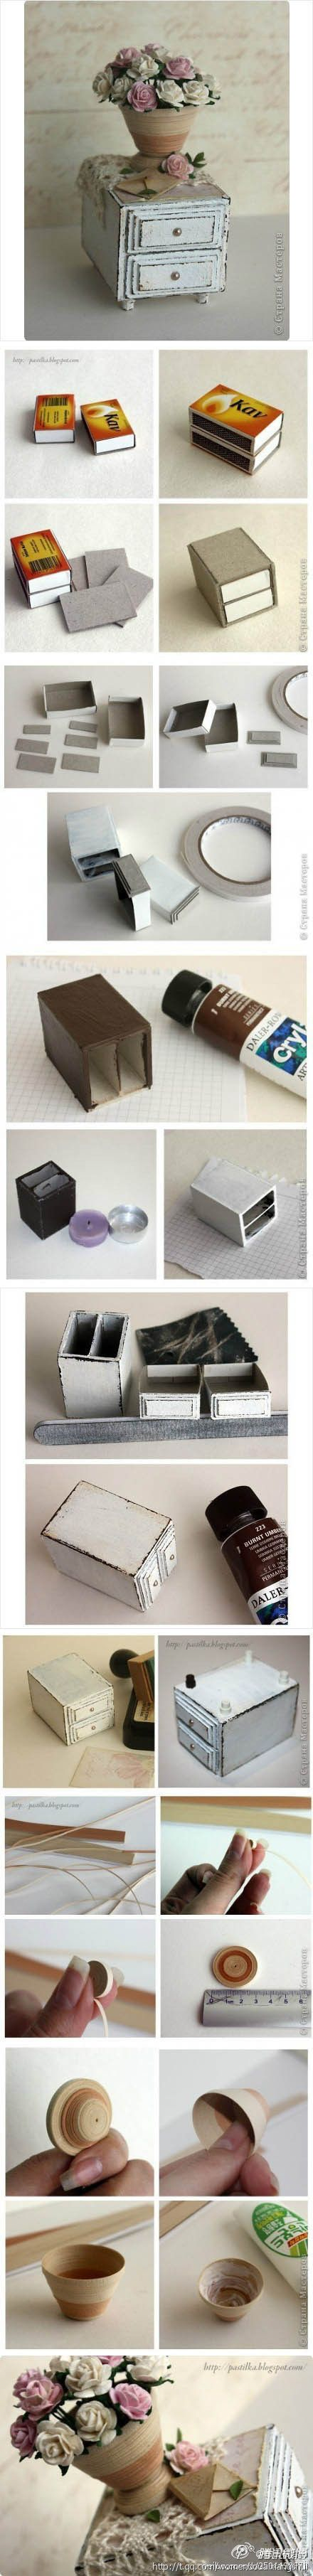 Making a miniature with matchboxes. Amazing idea!